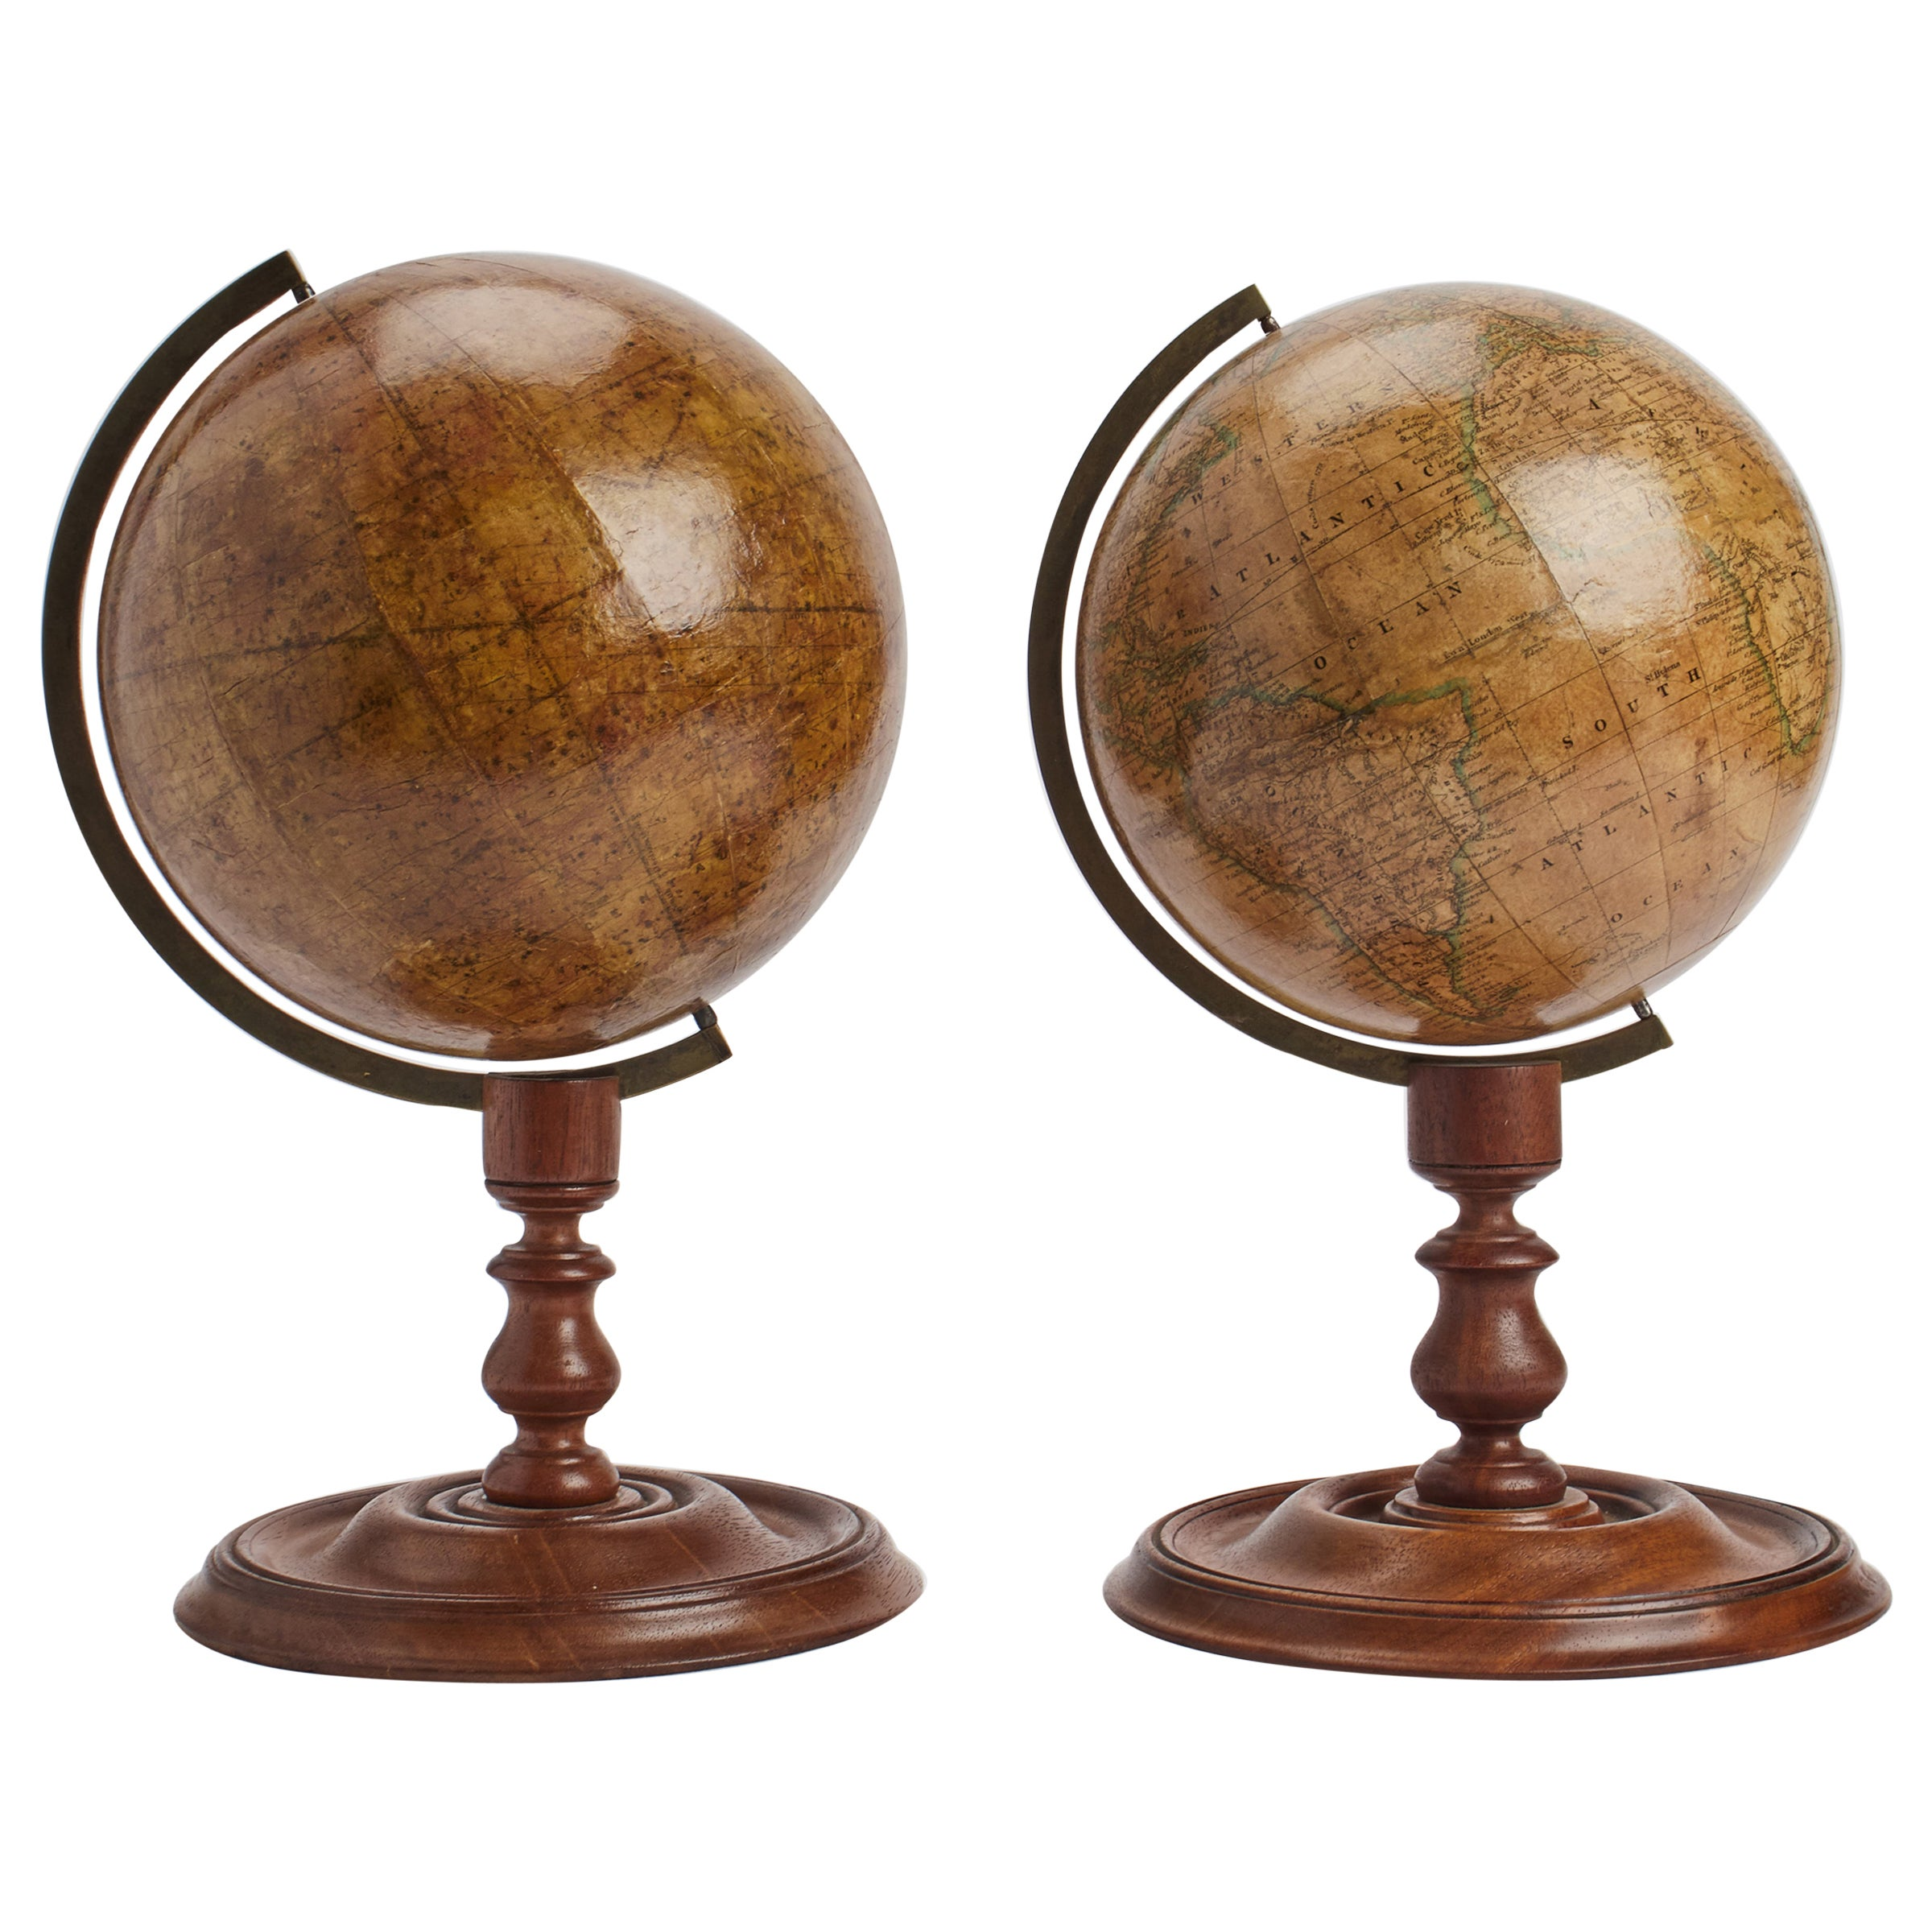 A Pair of Celestial and Terrestrial Globes, London, 1850